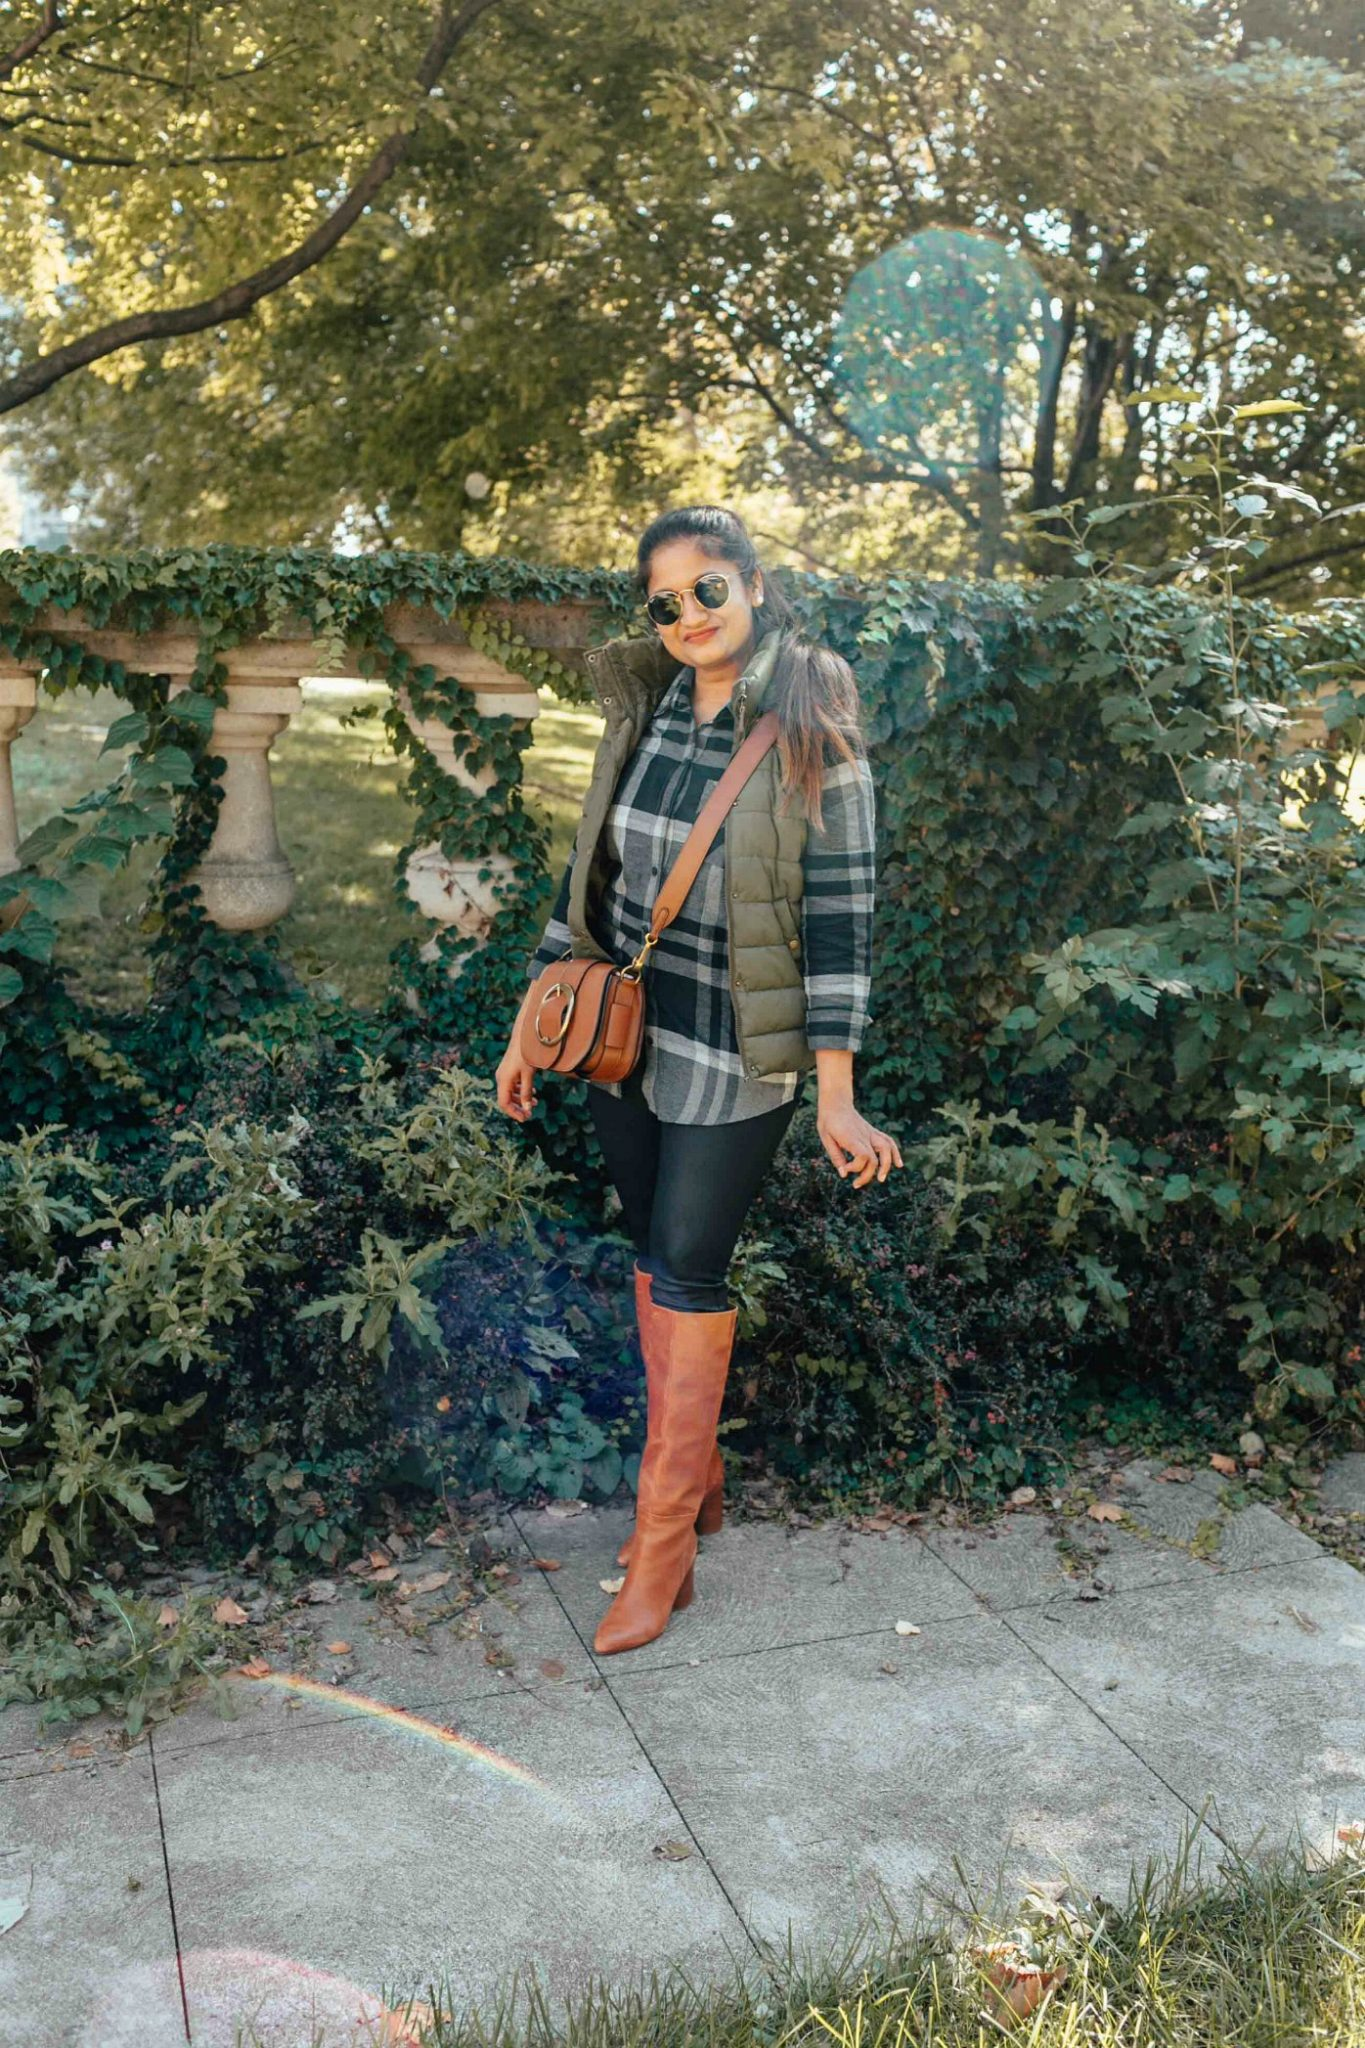 wearing Ralph Lauren Pebbled Leather Lennox Bag Saddle bag (1) | Eddie Bauer boyfriend flannel shirt styled 4 ways, featured by top Ohio modest fashion blog, Dreaming Loud